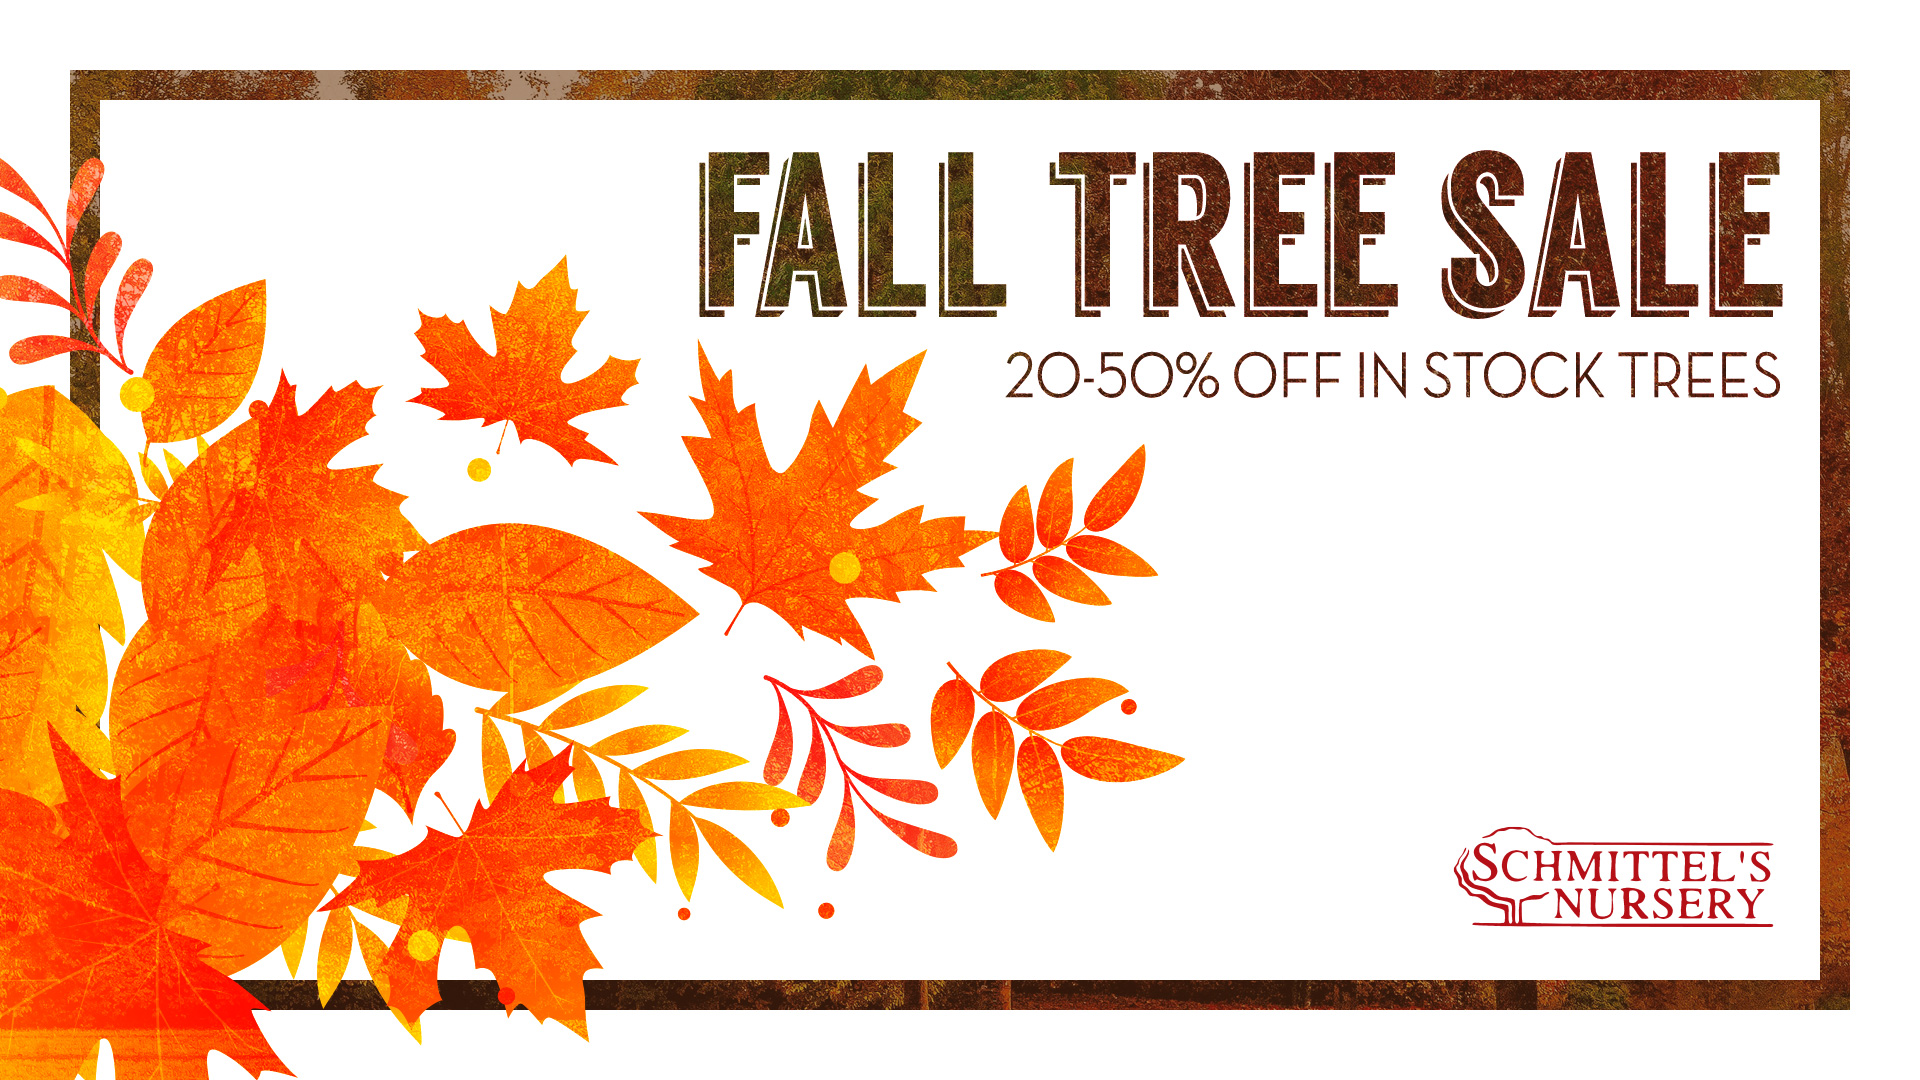 Schmittel's Annual Fall Tree Sale 2018